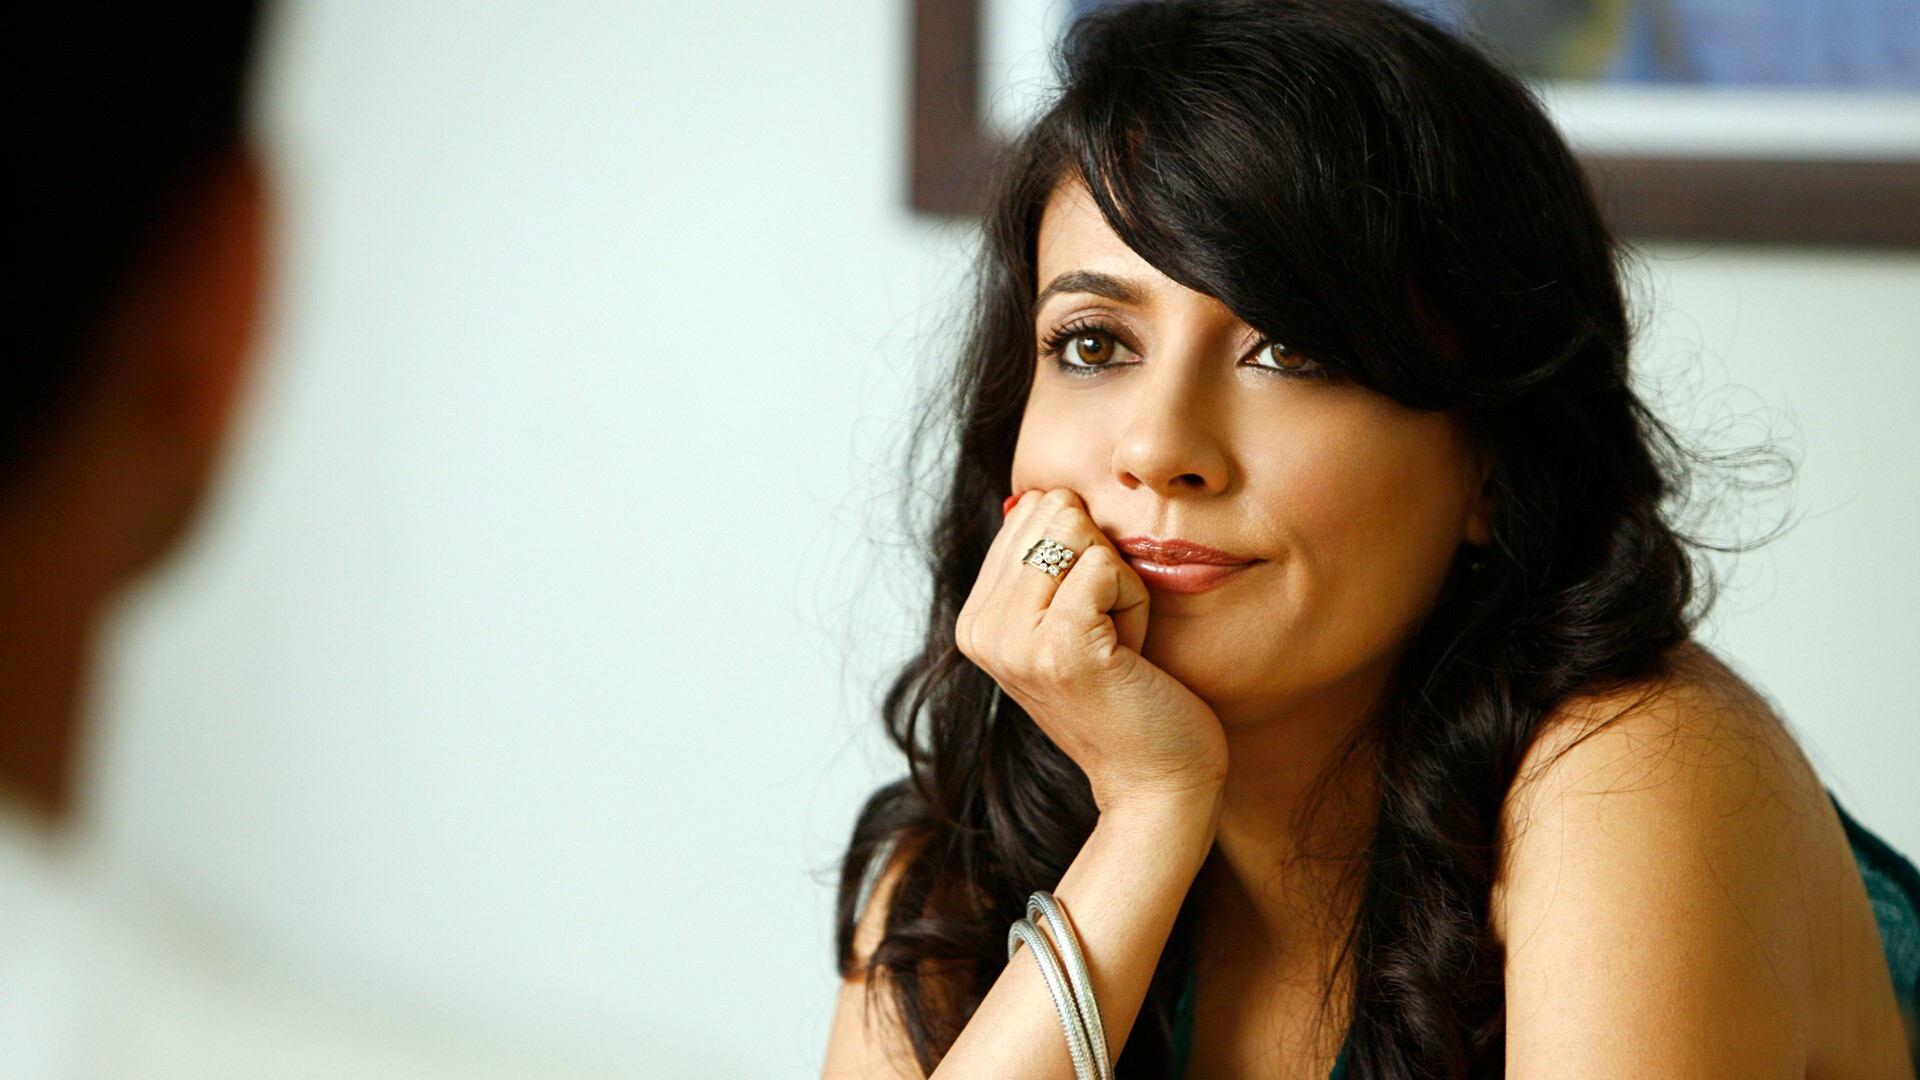 cute bollywood actress chitrangada singh hd wallpapers | hd wallpapers